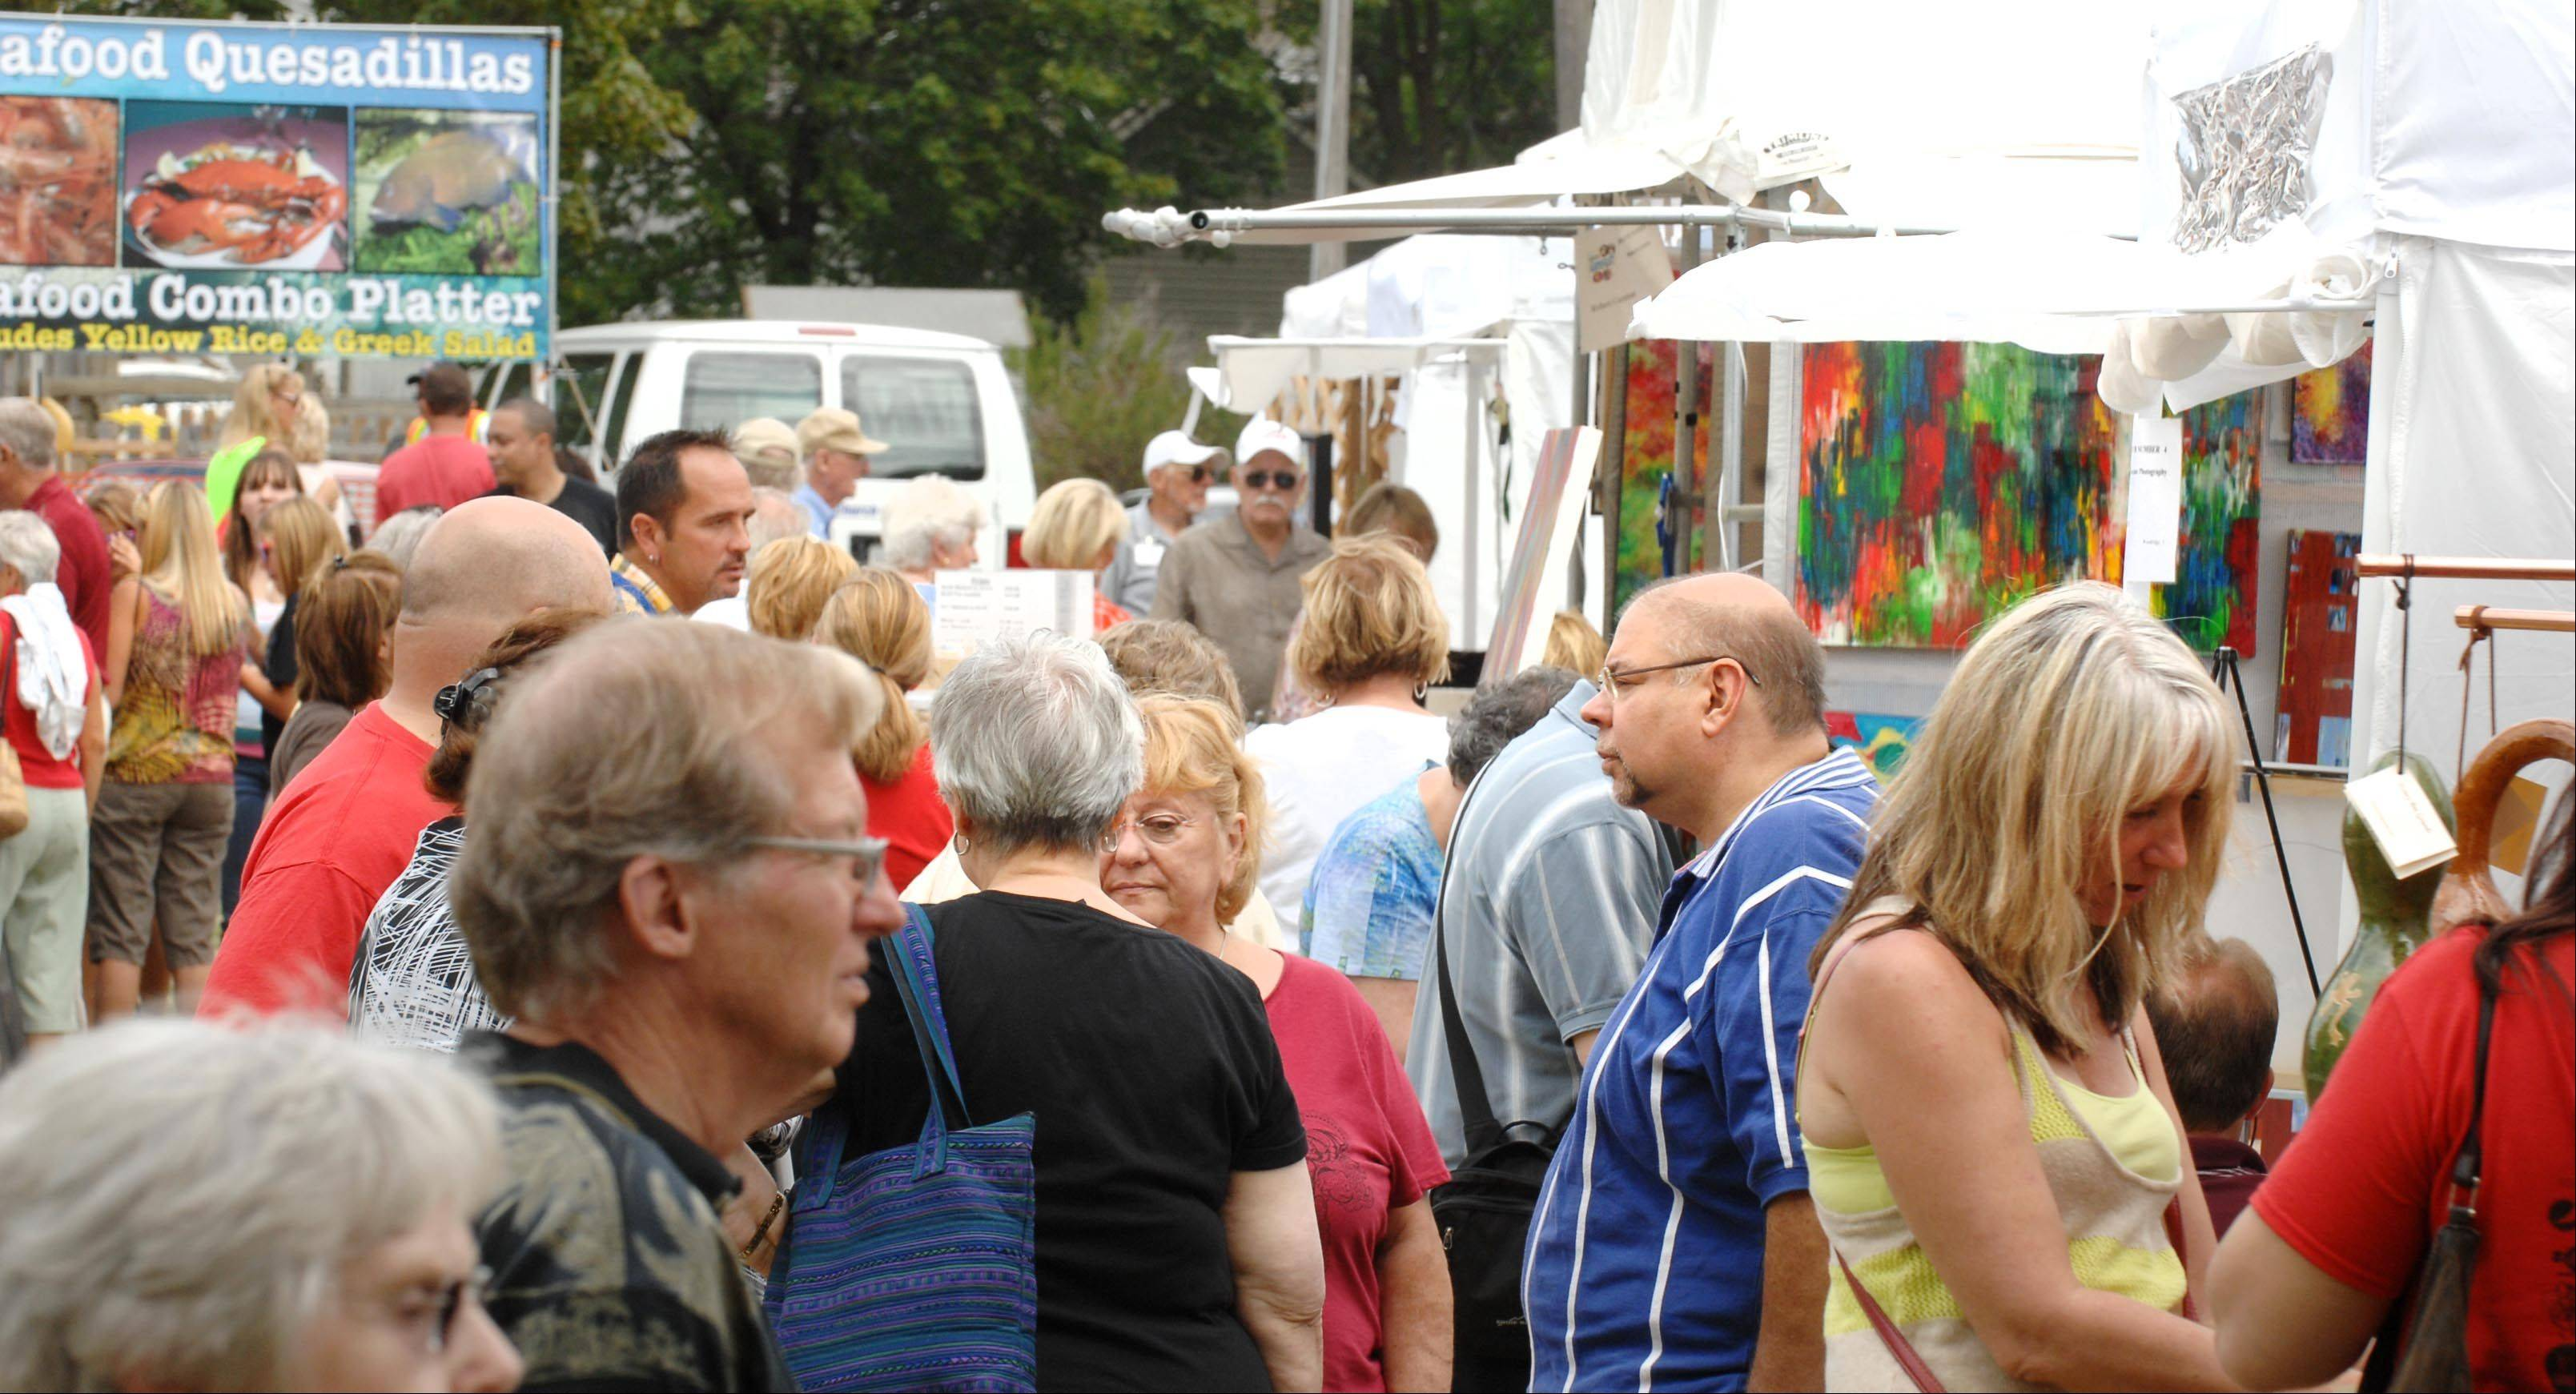 The aisles were full of browsers Sunday during Huntley Artfest, which organizers said doubled its attendance since its first year in 2011.